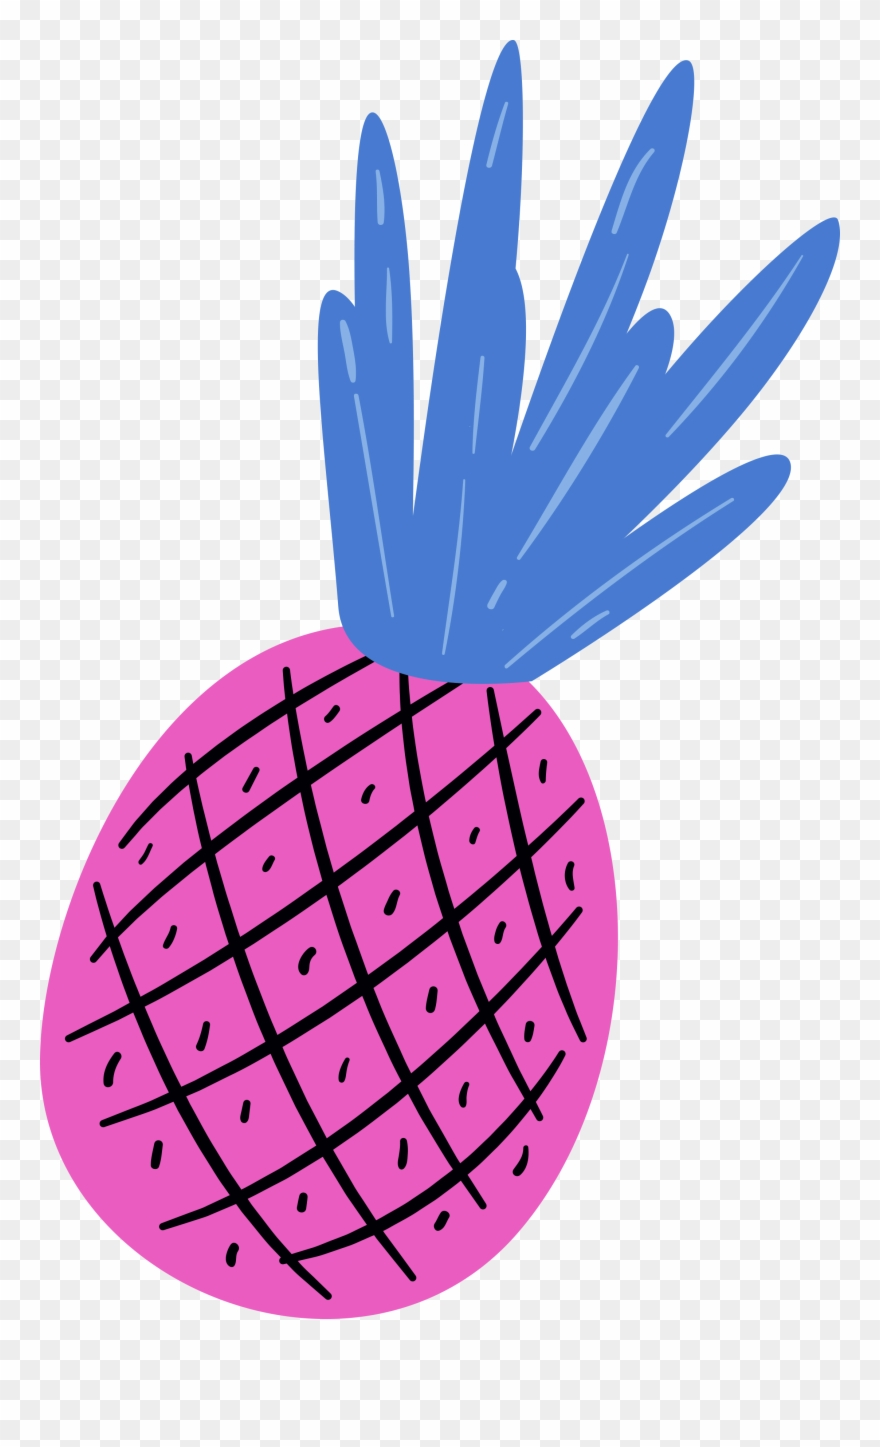 Colorful pineapple clipart graphic transparent leave - Free Colorful Pineapple Clipart Png Transparent Png (#51752 ... graphic transparent